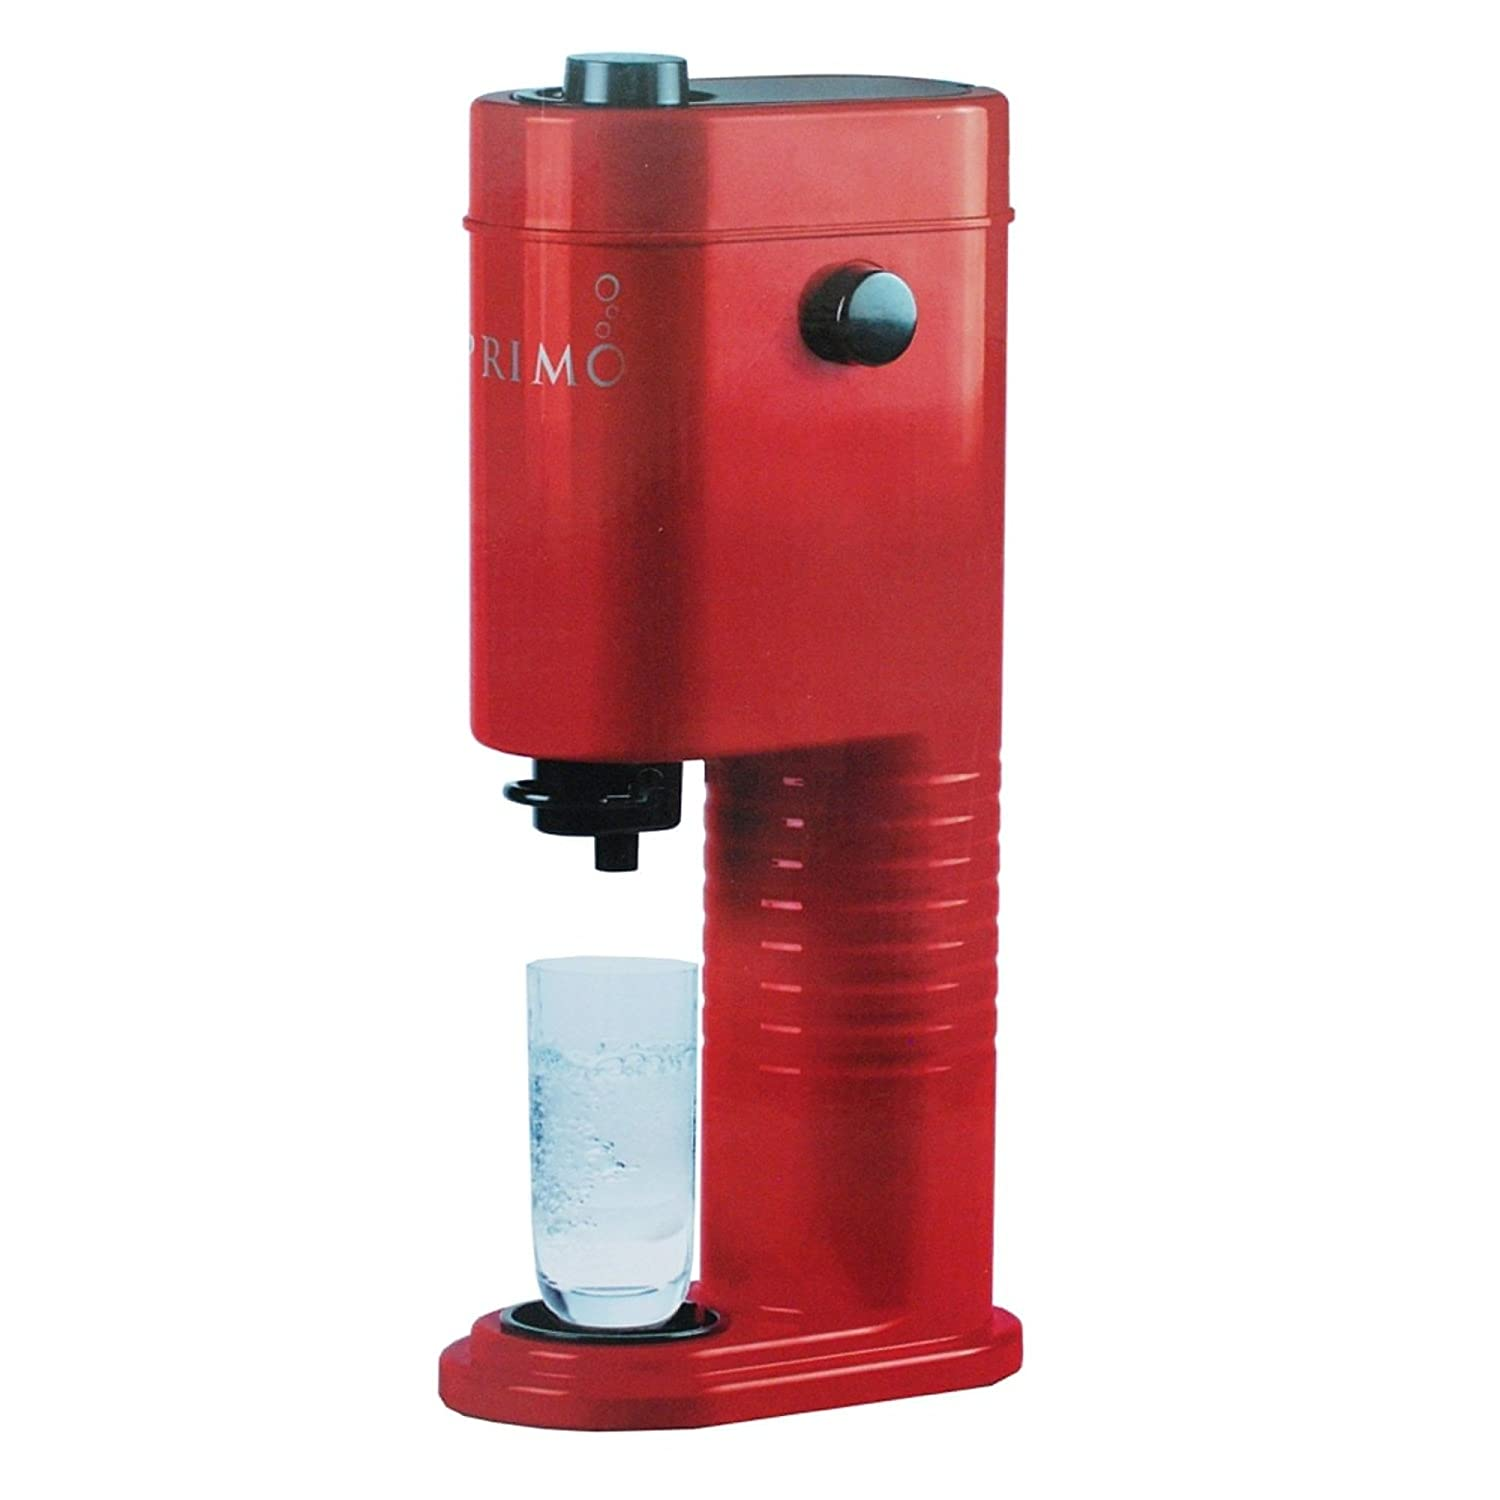 Primo Flavorstation Home Beverage Maker FSS Freedom 200 (Red) by Flavorstation Primo Water Corporation